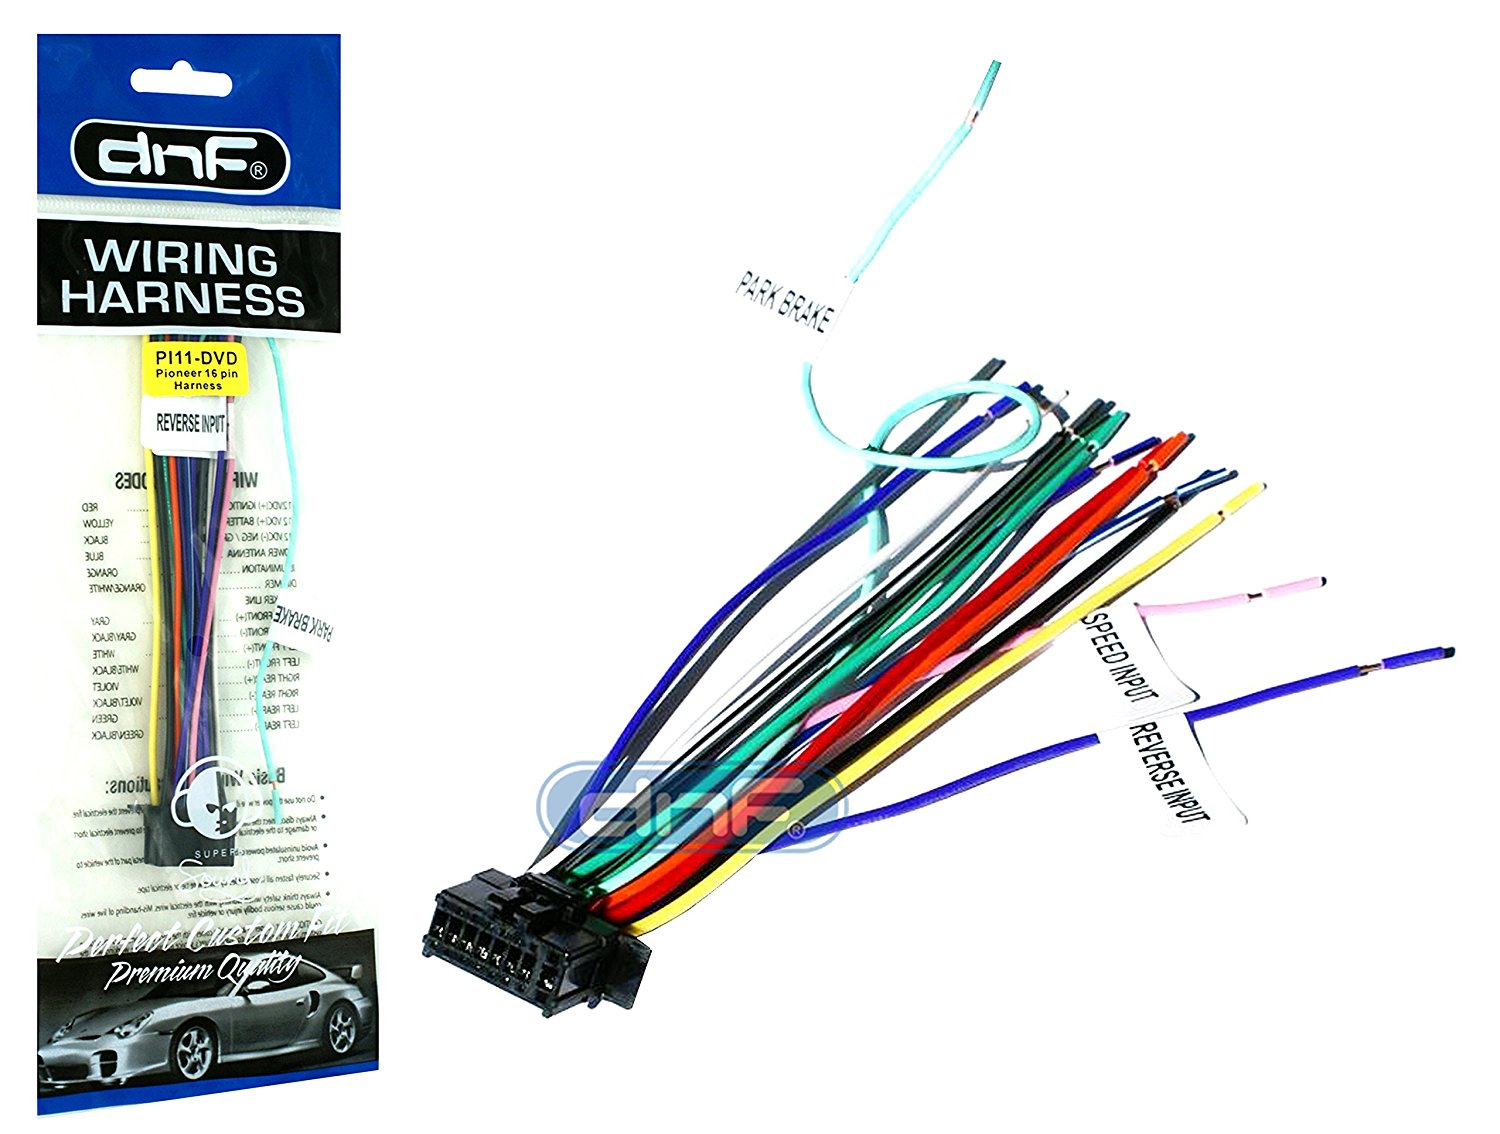 hight resolution of dnf new pioneer wiring harness avh x6700 dvd sm deh 100 copper wires walmart com